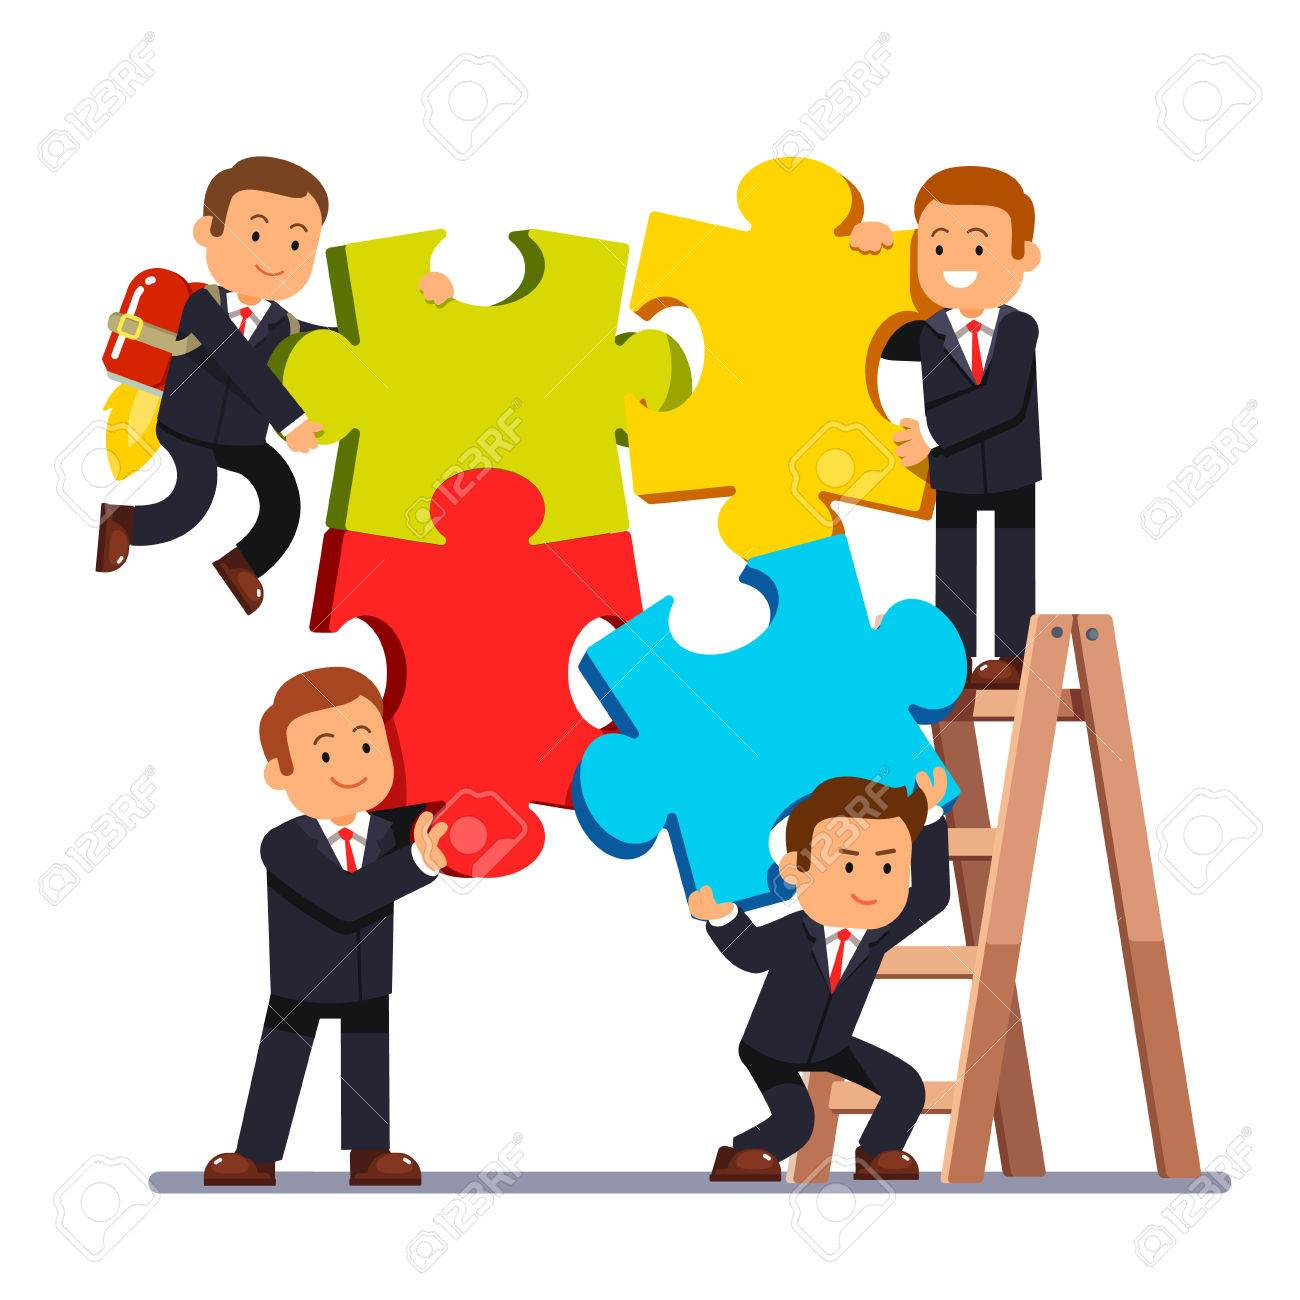 Company business team joining huge jigsaw puzzle pieces together.